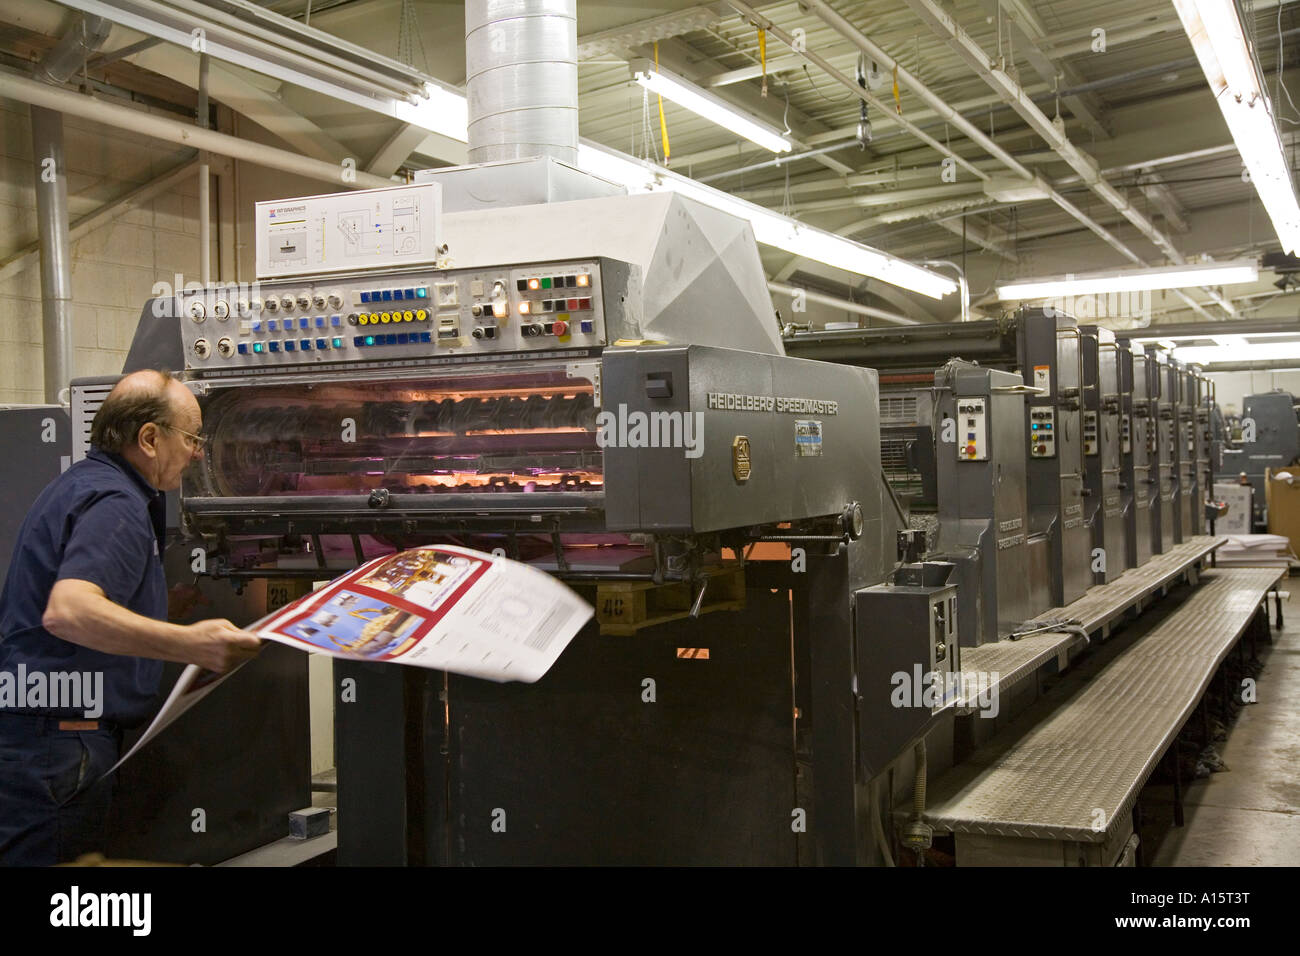 Printer - Stock Image